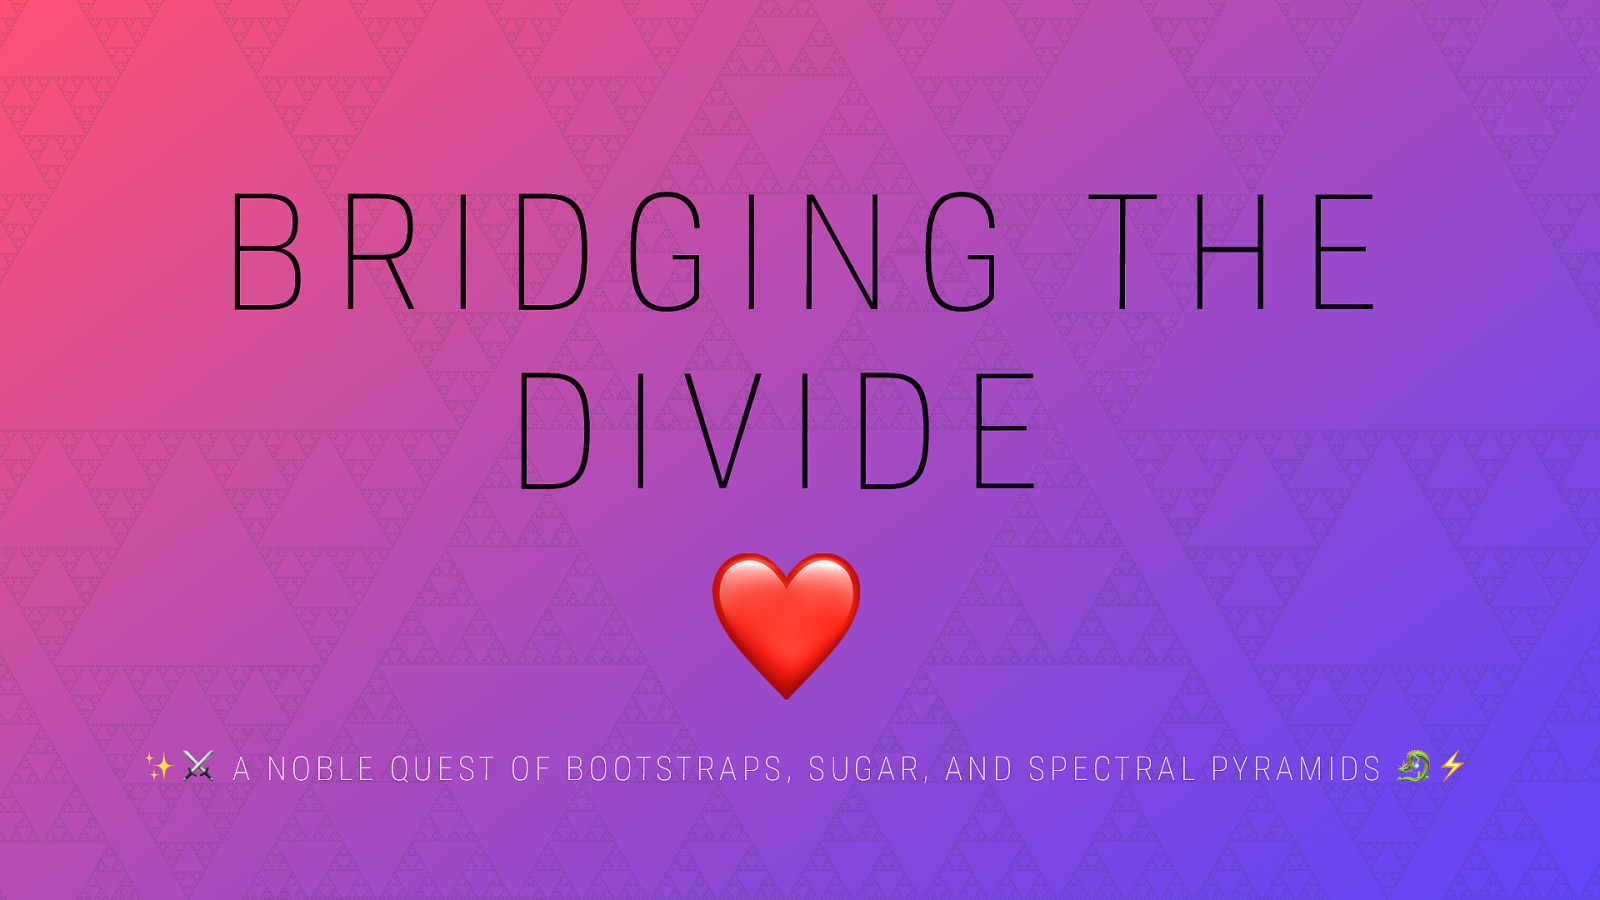 Bridging the Divide: a noble quest of bootstraps, sugar, and spectral pyramids